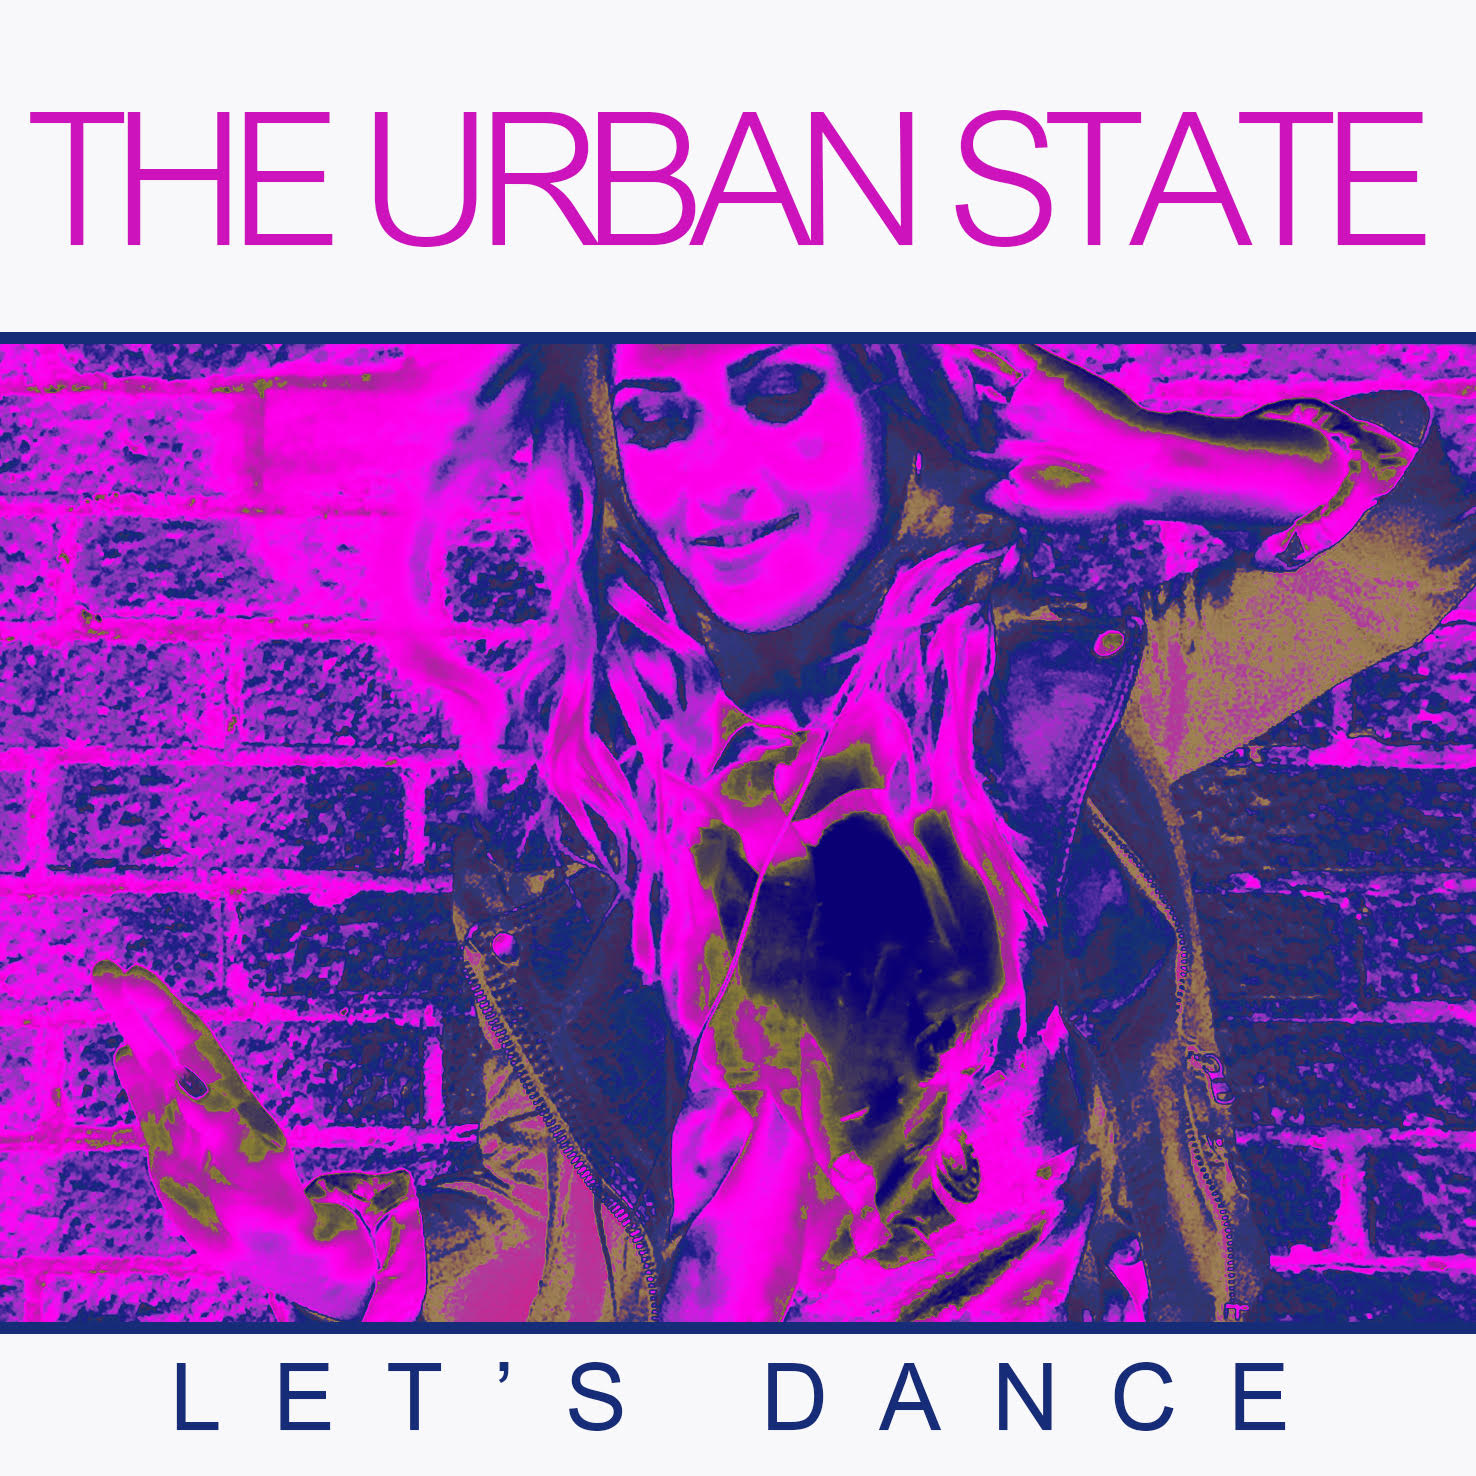 The Urban State - Let's Dance